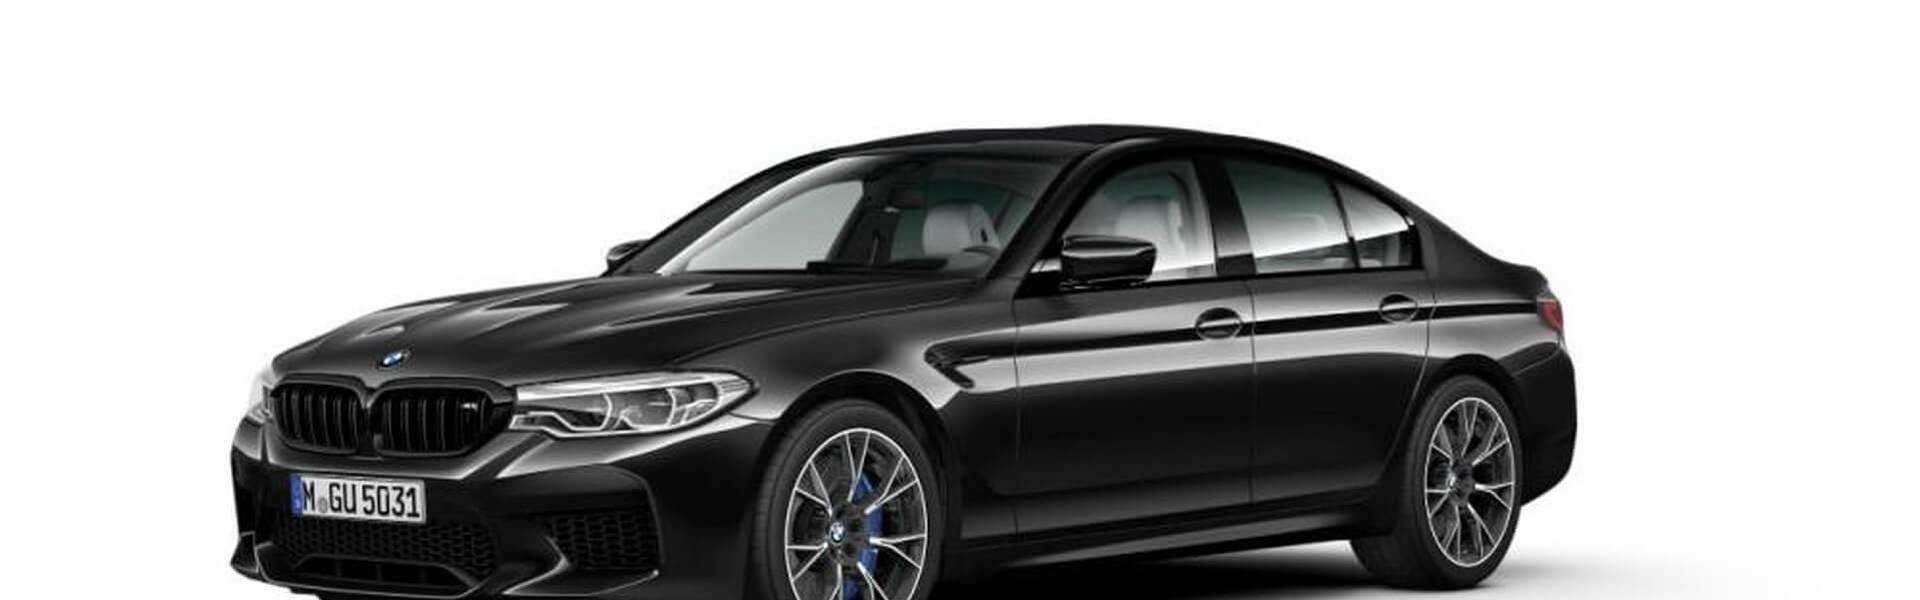 bmw-m5-with-the-competition-package (1).jpg